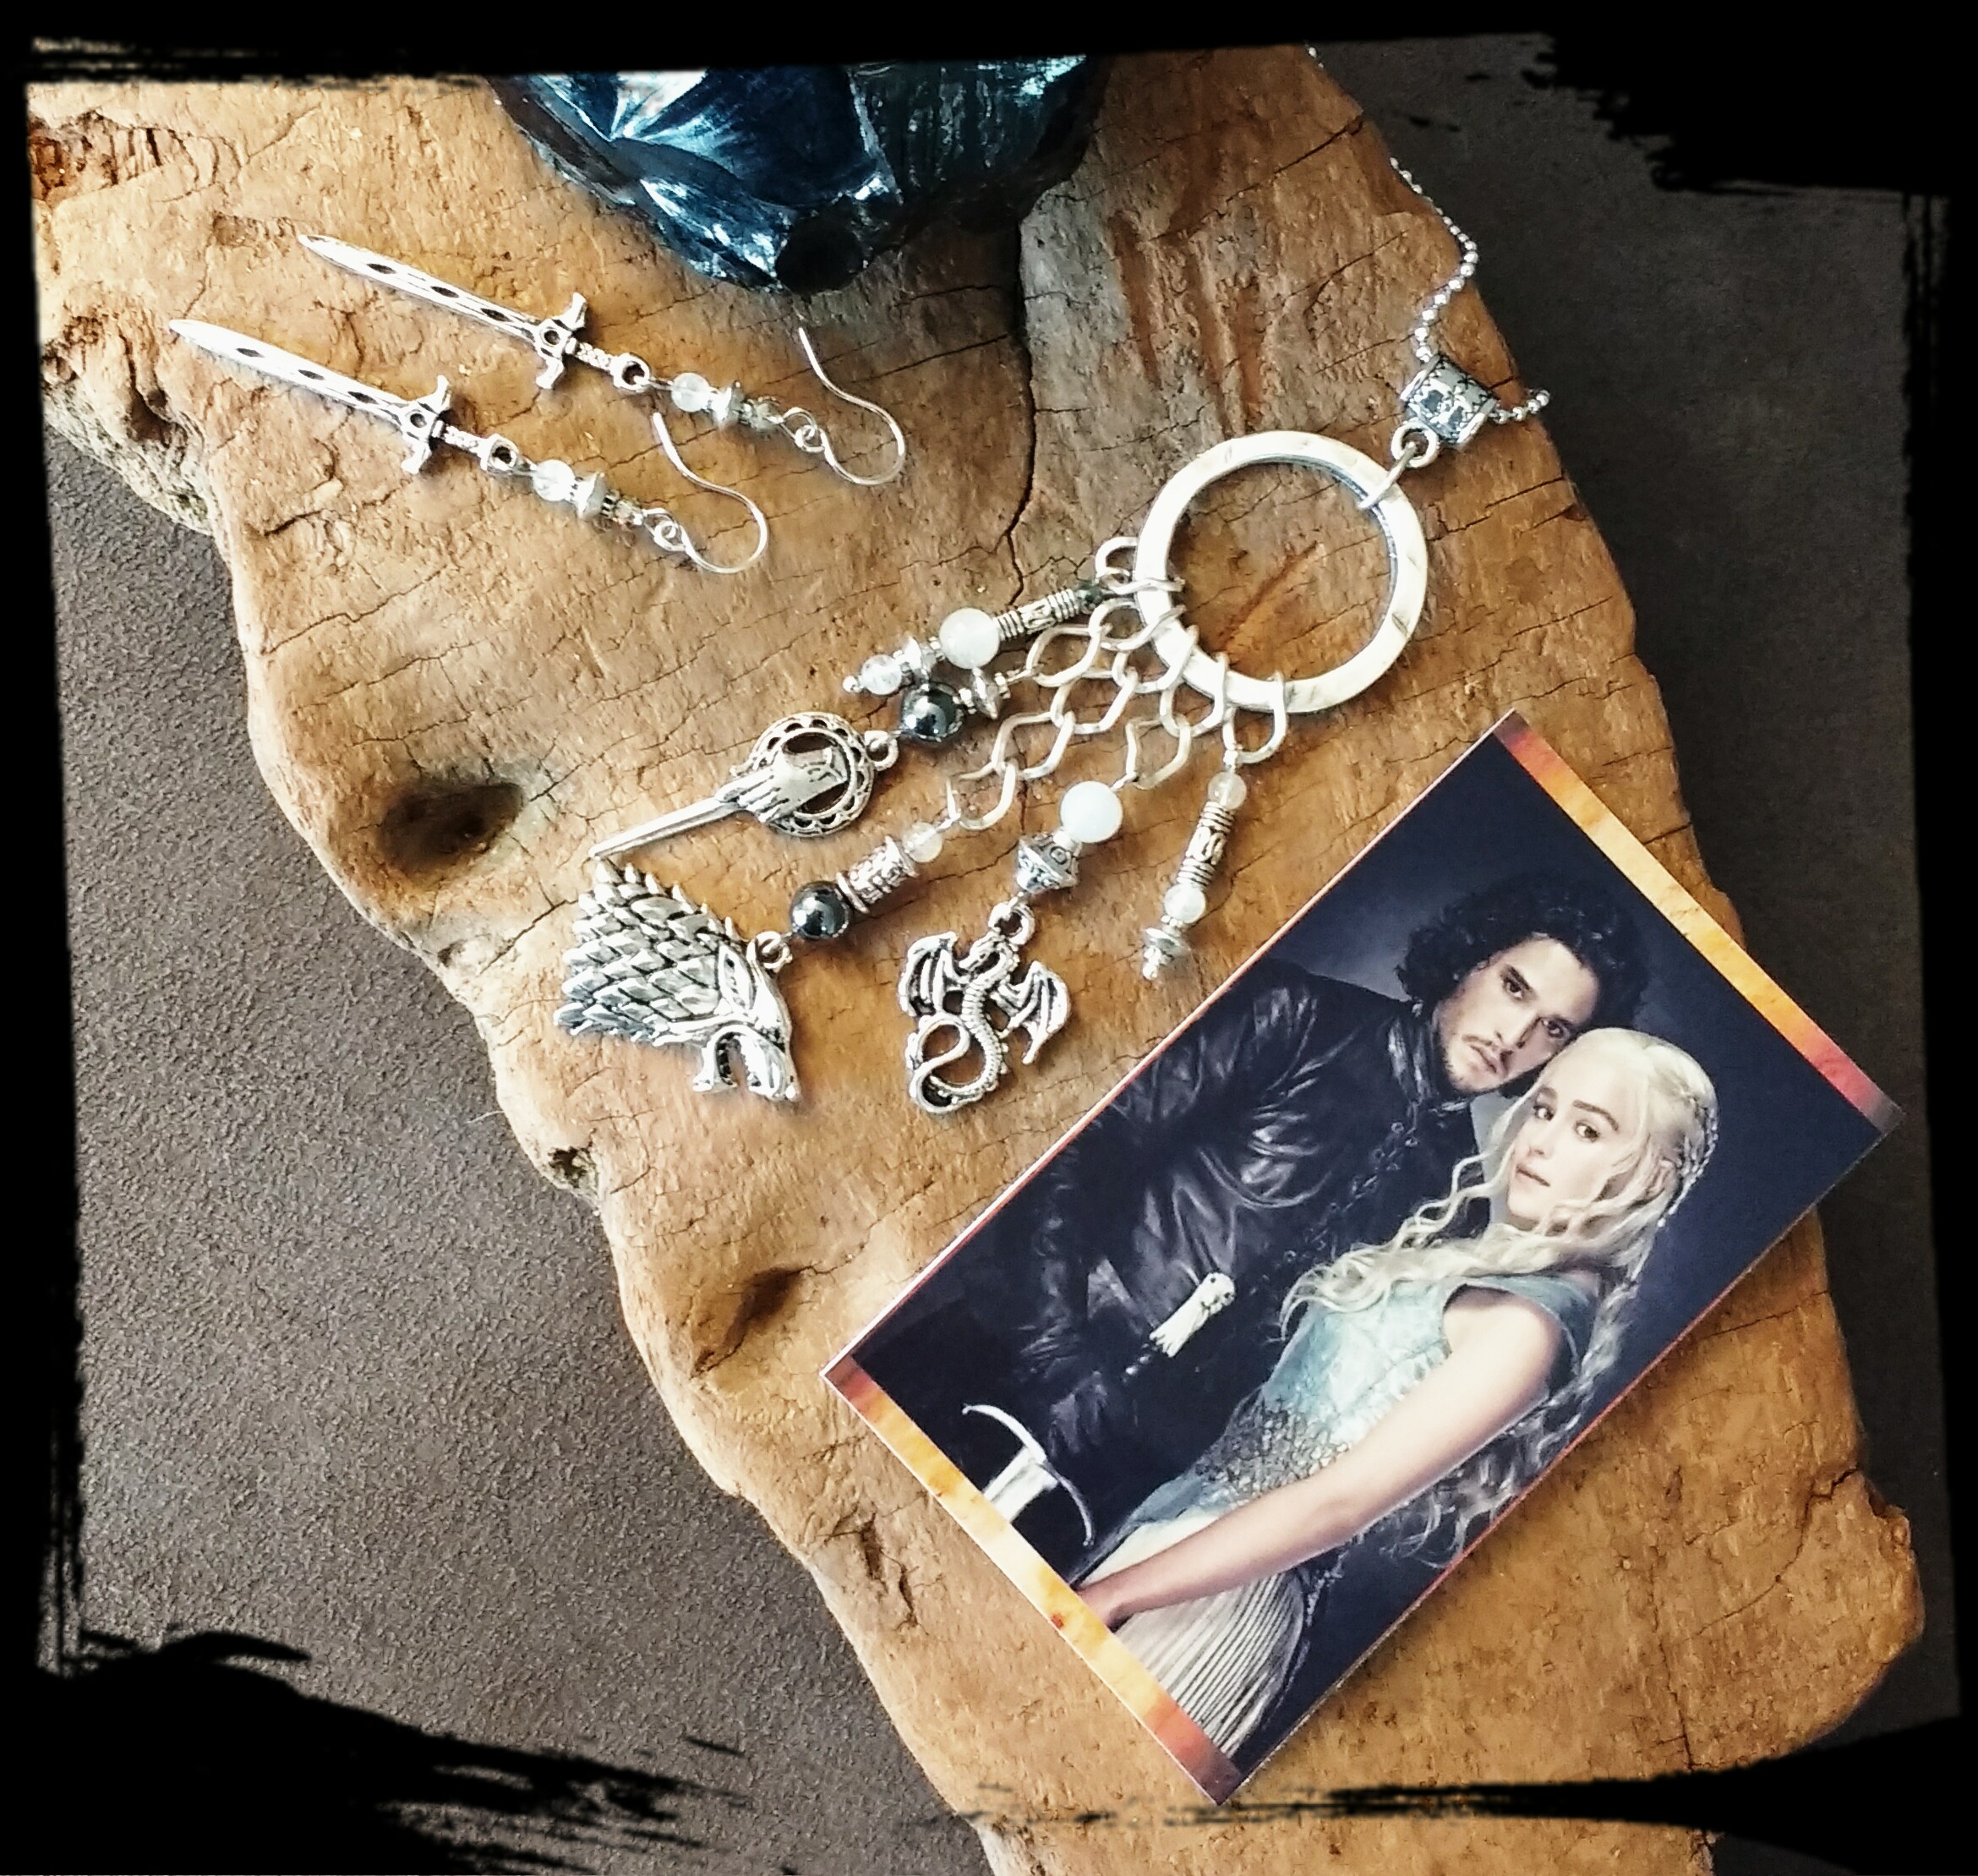 Game of thrones necklace and earrings.jpg